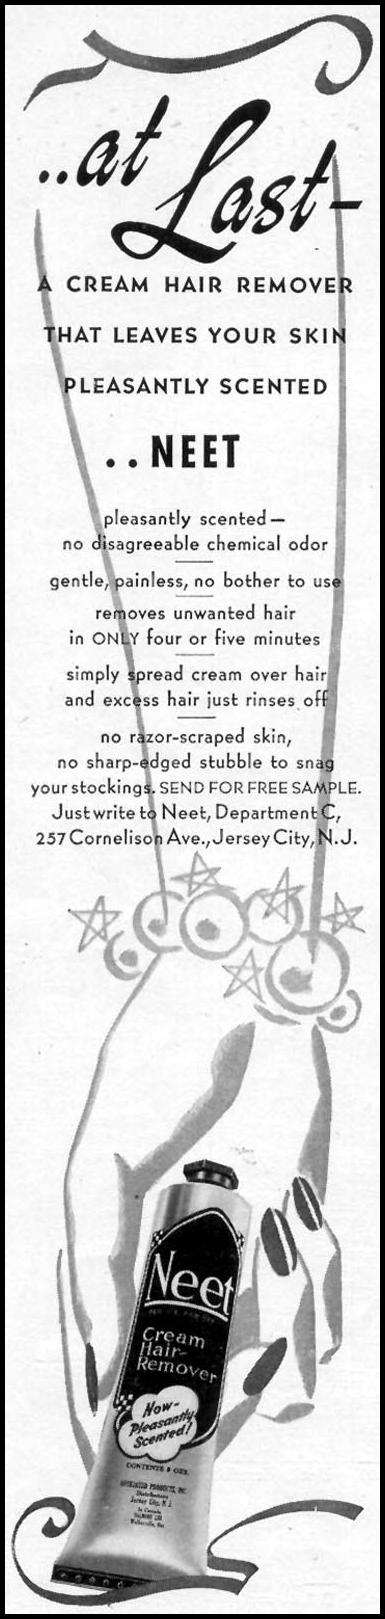 NEET CREAM HAIR REMOVER WOMAN'S DAY 09/01/1940 p. 2